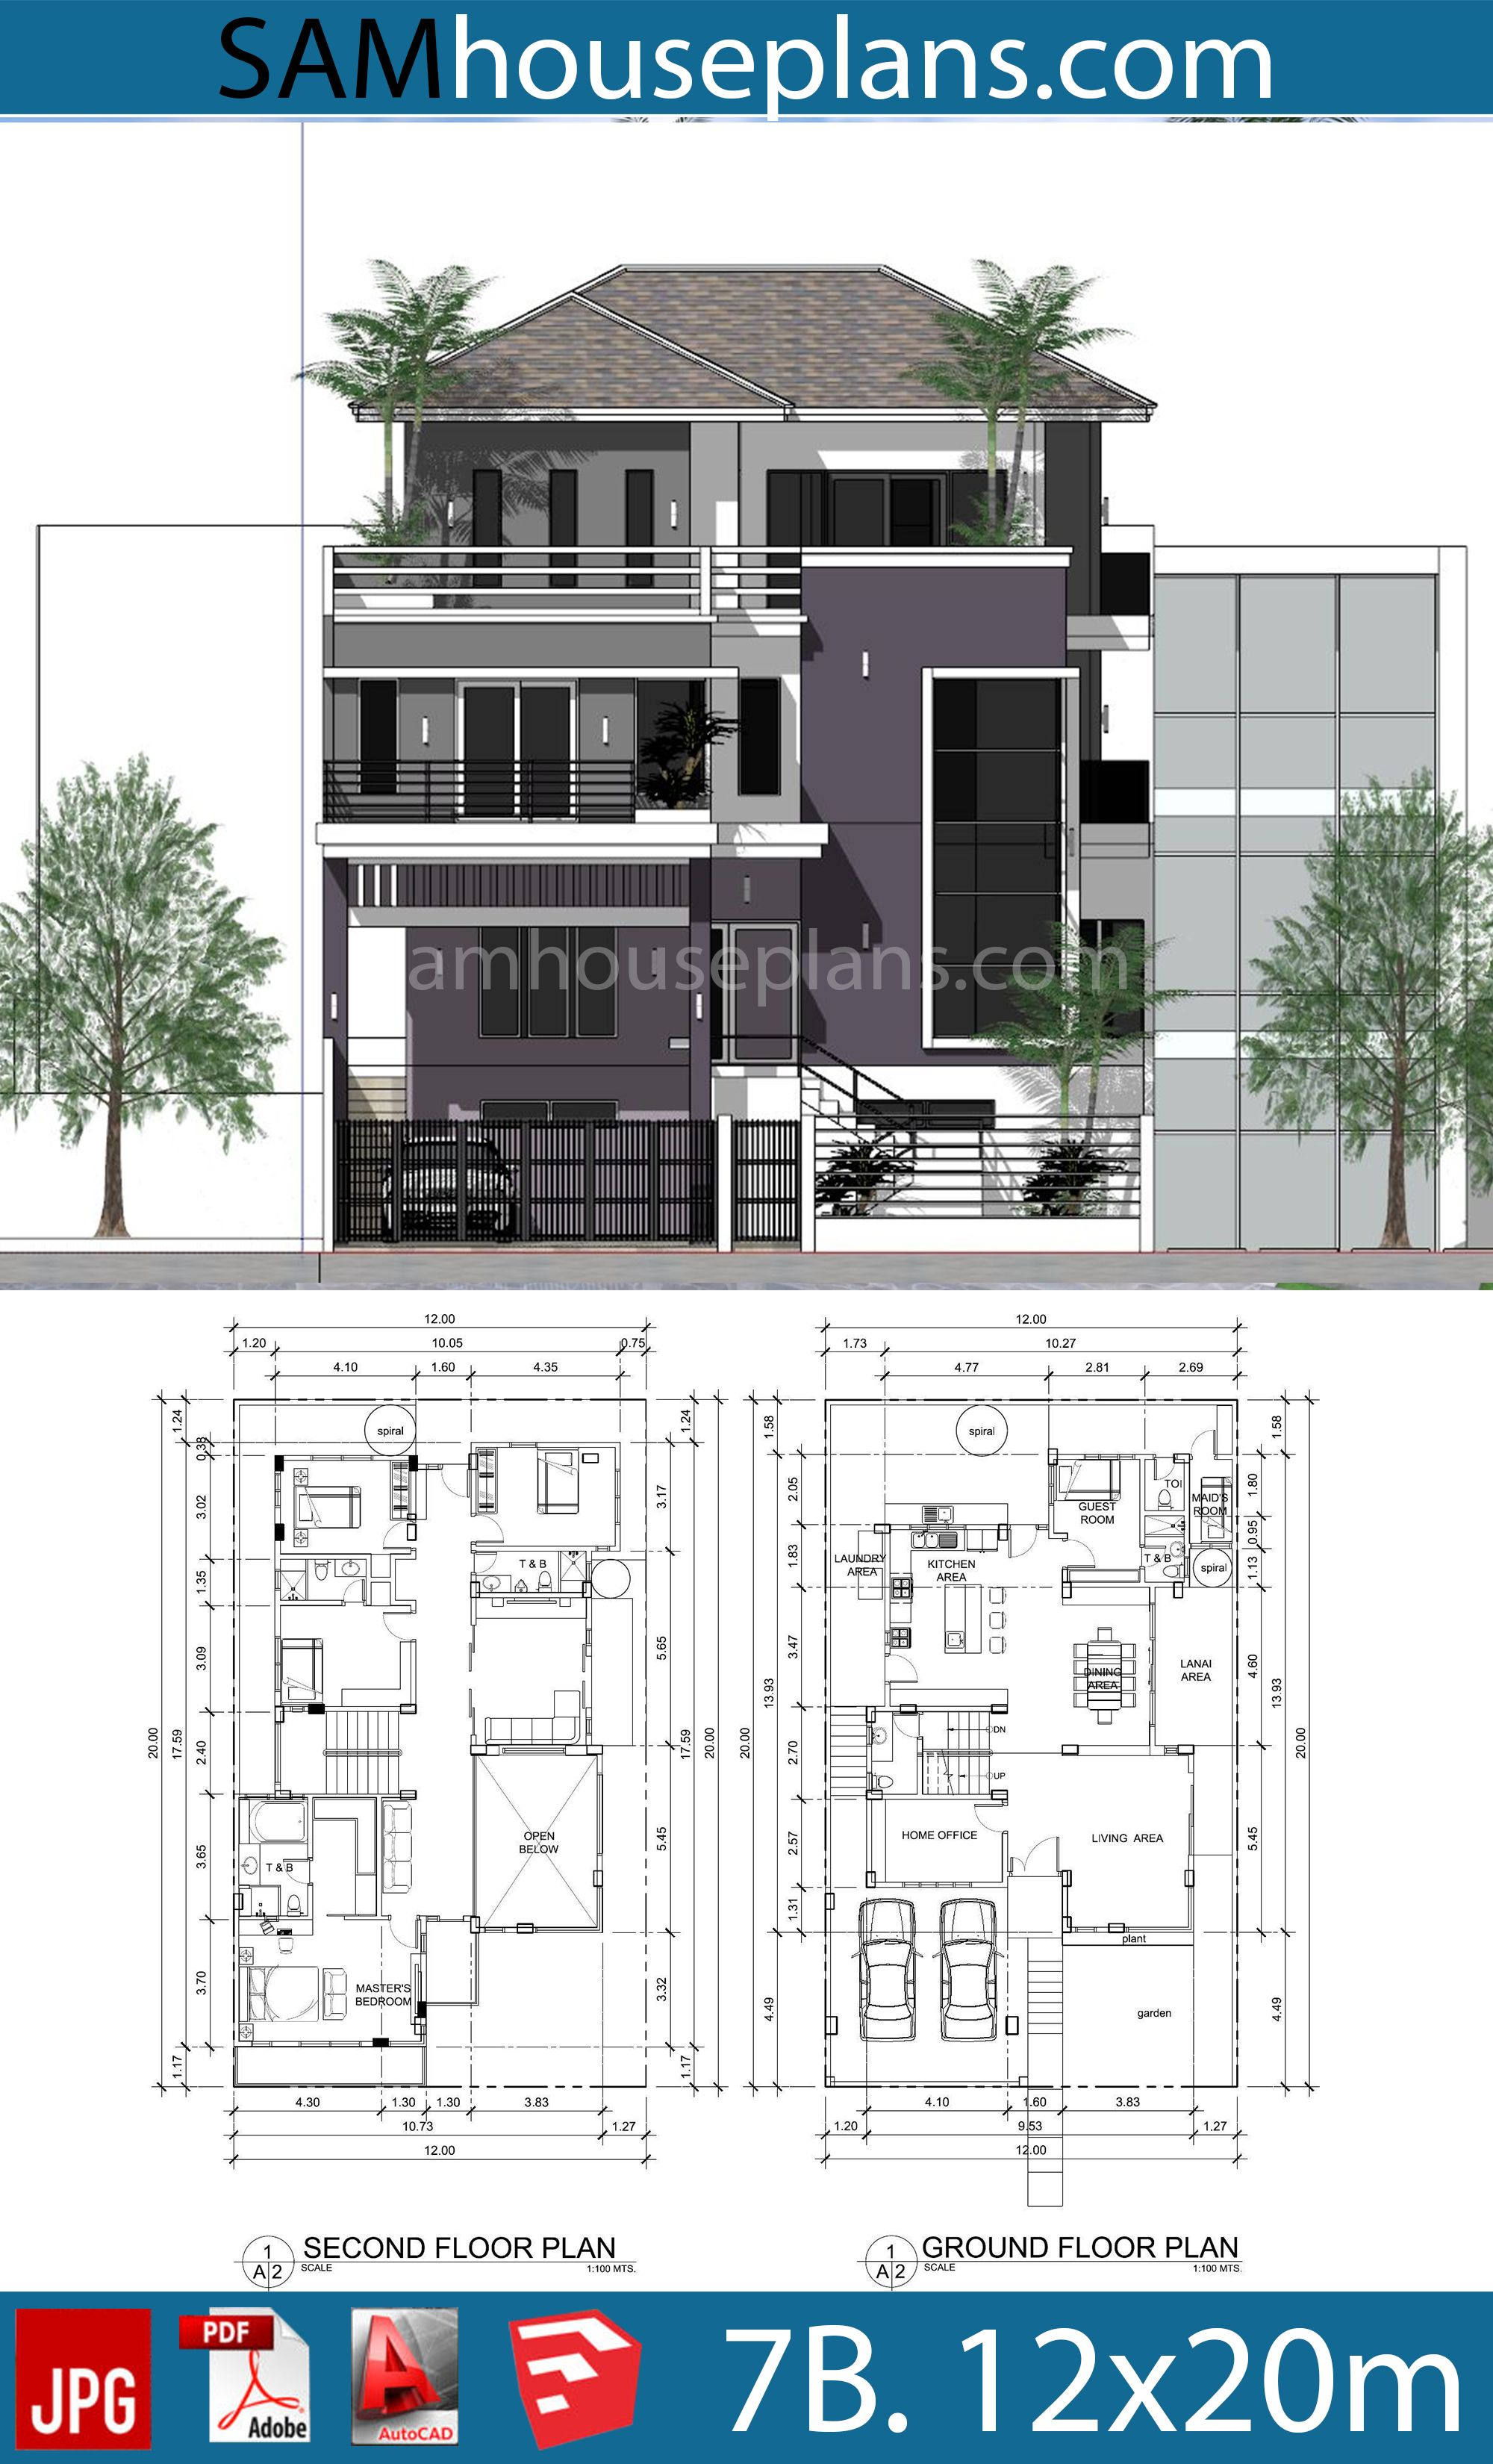 House Plans 12mx20m with 7 Bedrooms Sam House Plans in